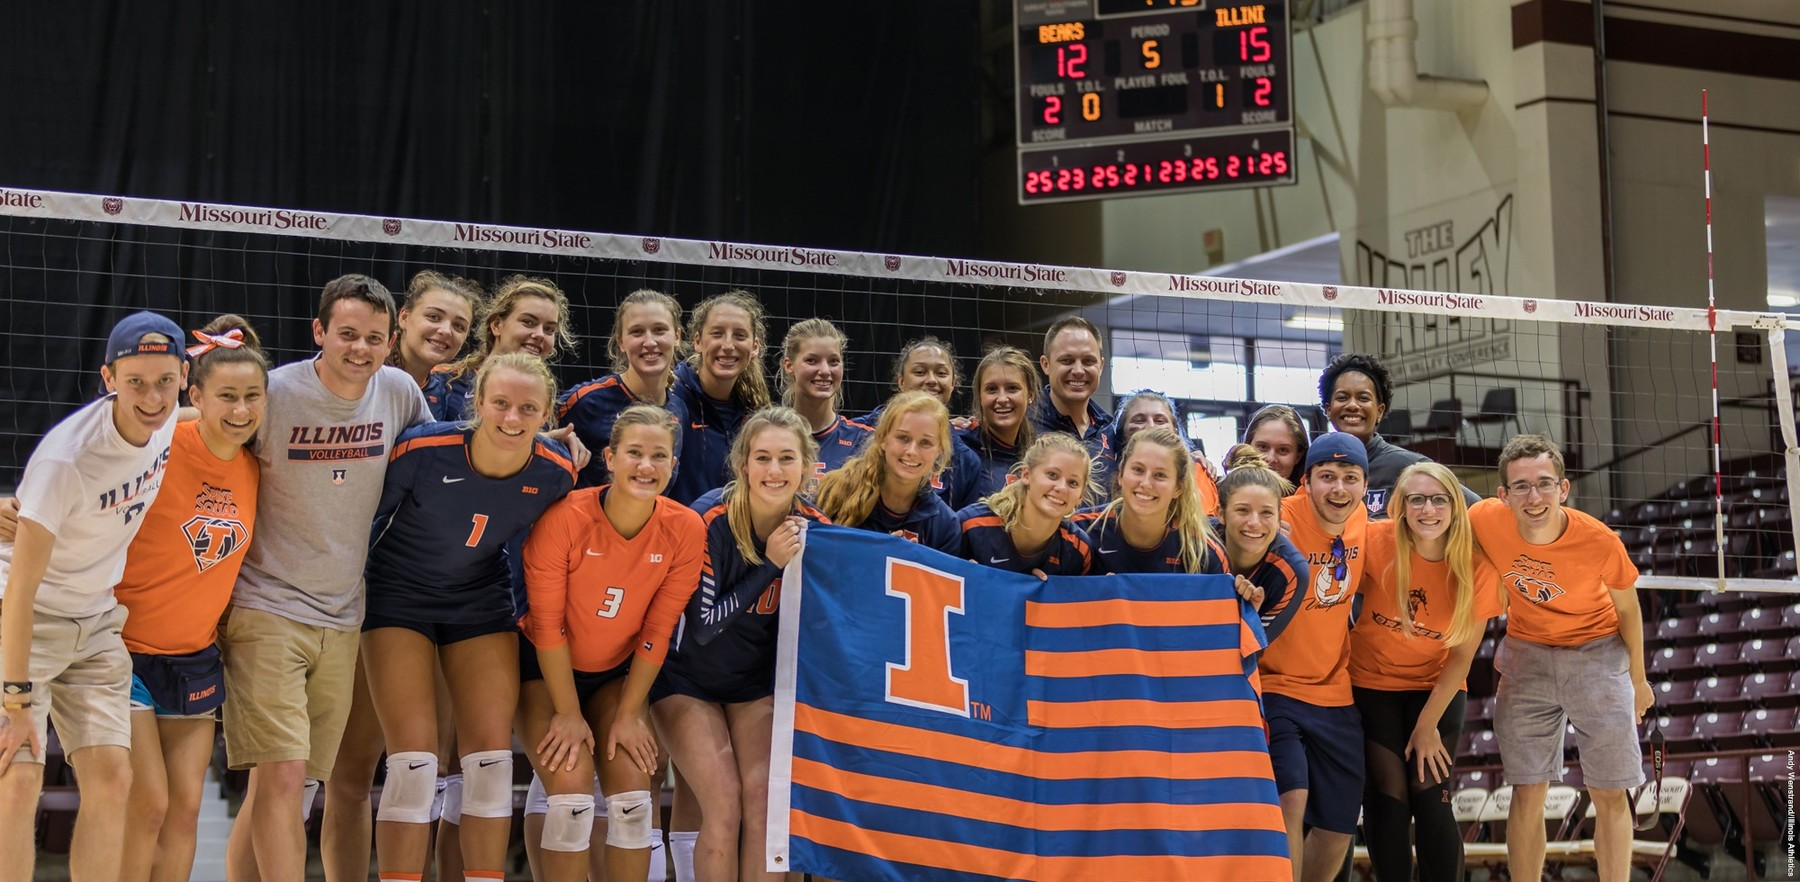 volleyball players and fans surround an Illini flag